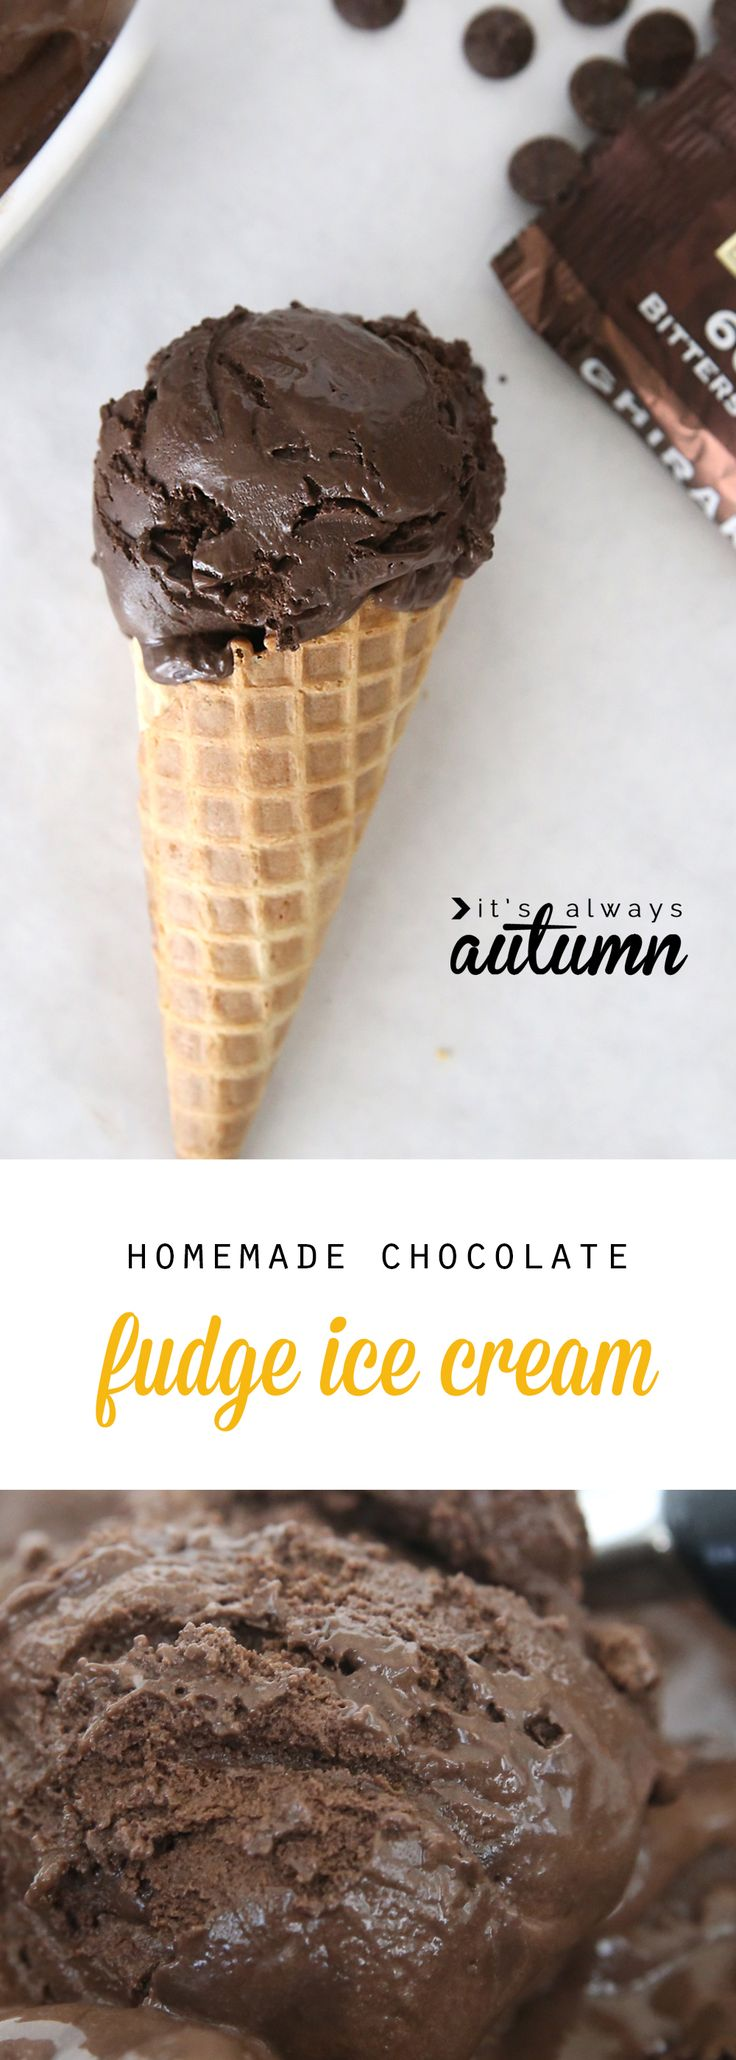 This homemade dark chocolate fudge ice cream is amazing! It's rich and creamy and better than anything you can get at the grocery store. Click through for the step by step video that makes it easy to follow the recipe.